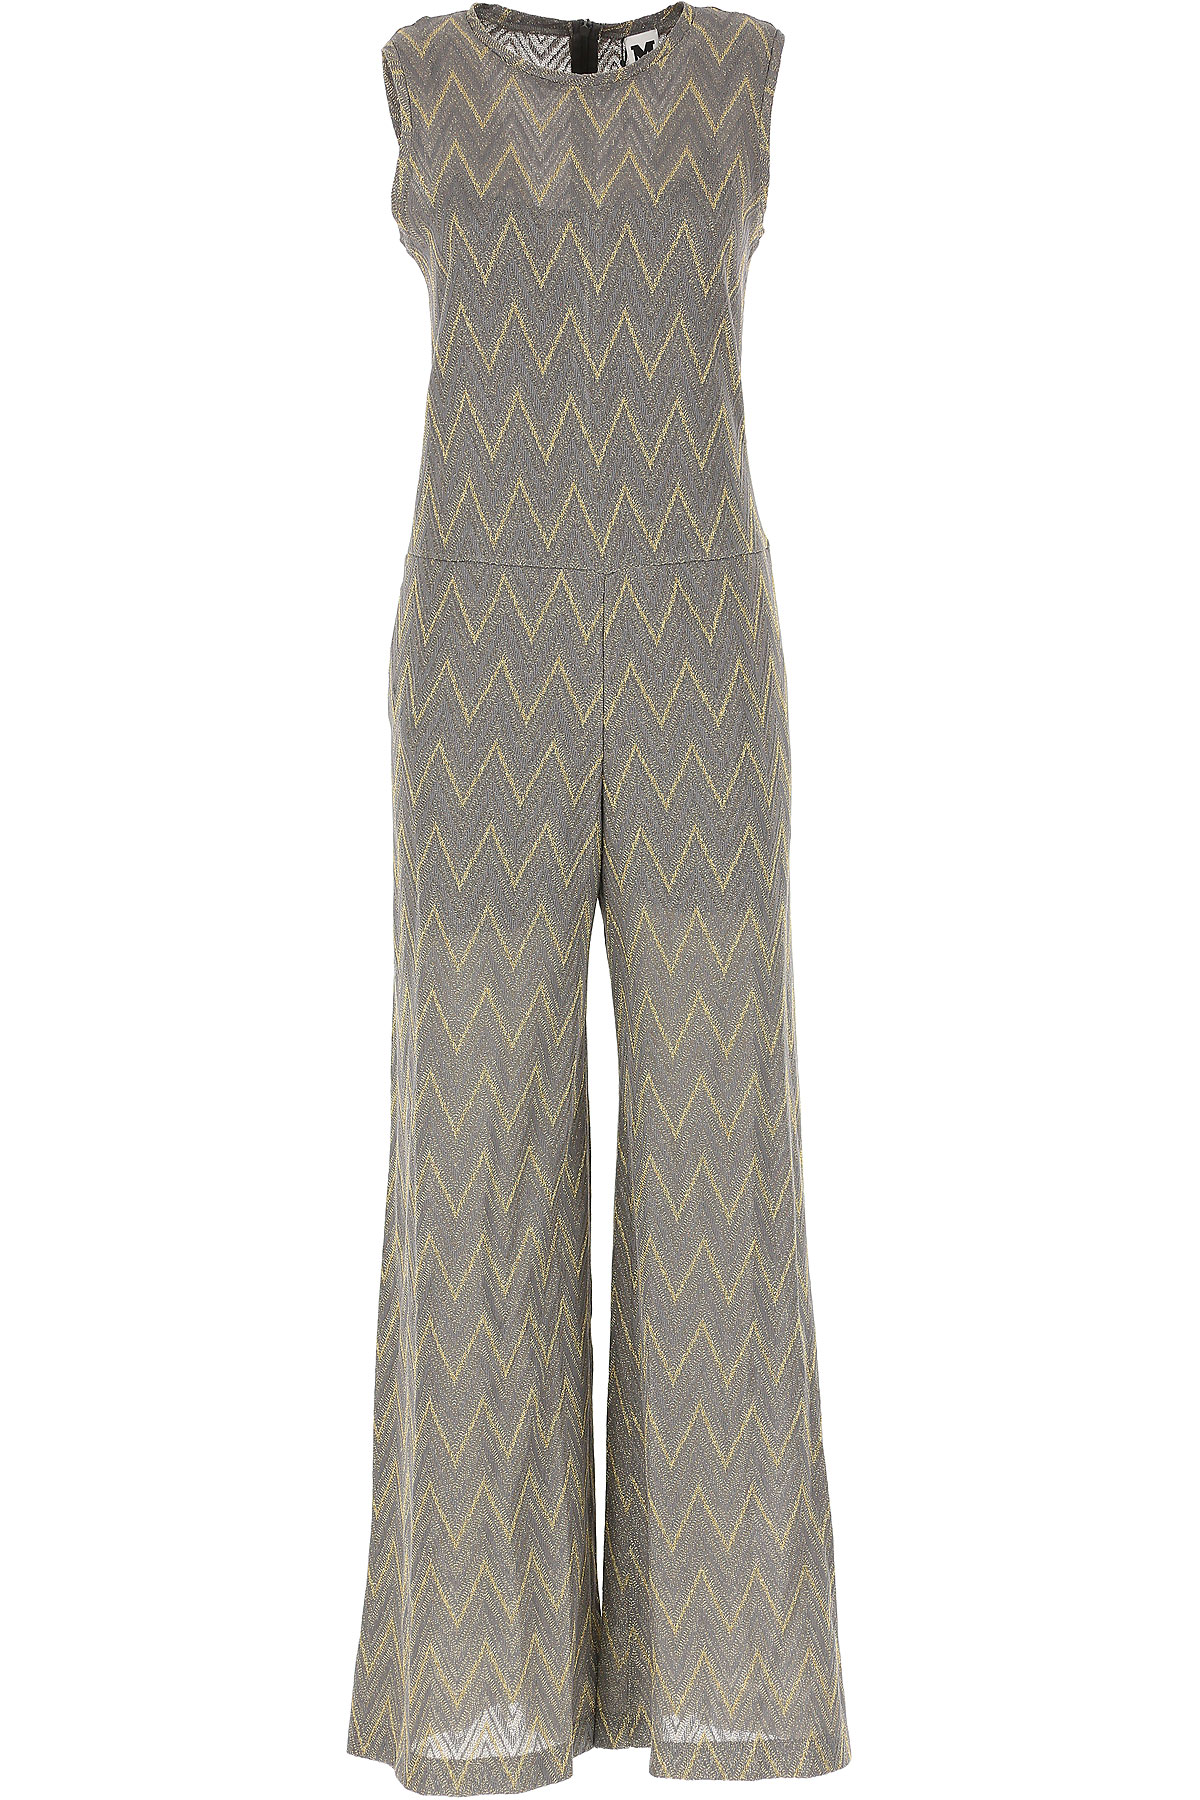 Image of Missoni Dress for Women, Evening Cocktail Party, Grey, viscosa, 2017, 2 4